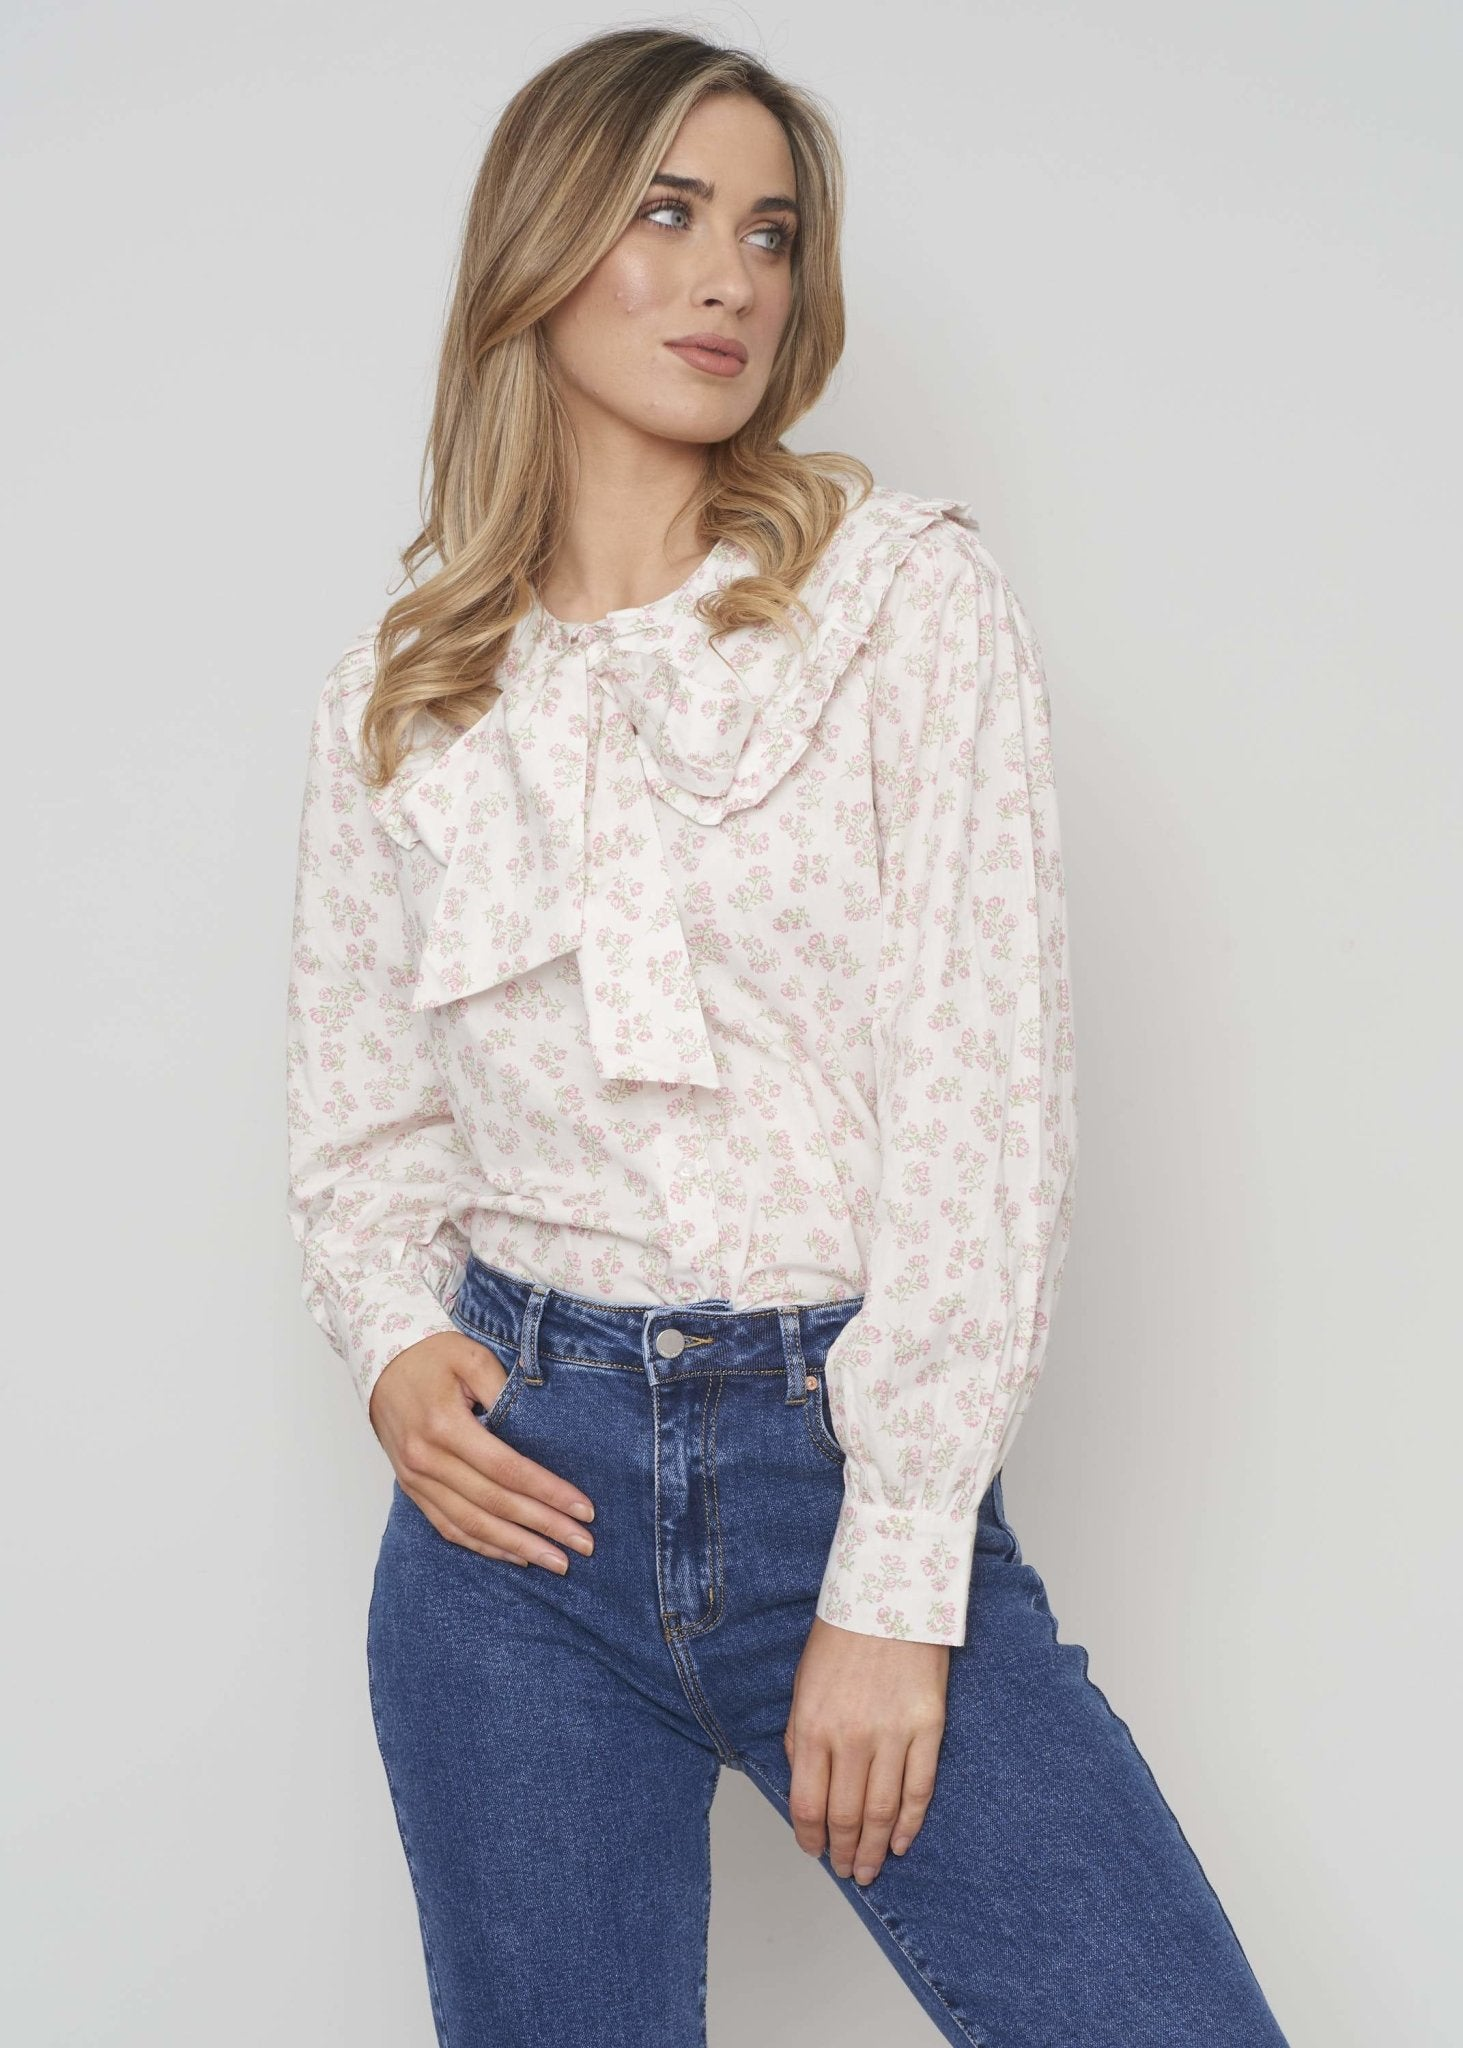 Freya Bow Collar Blouse In Cream Floral - The Walk in Wardrobe